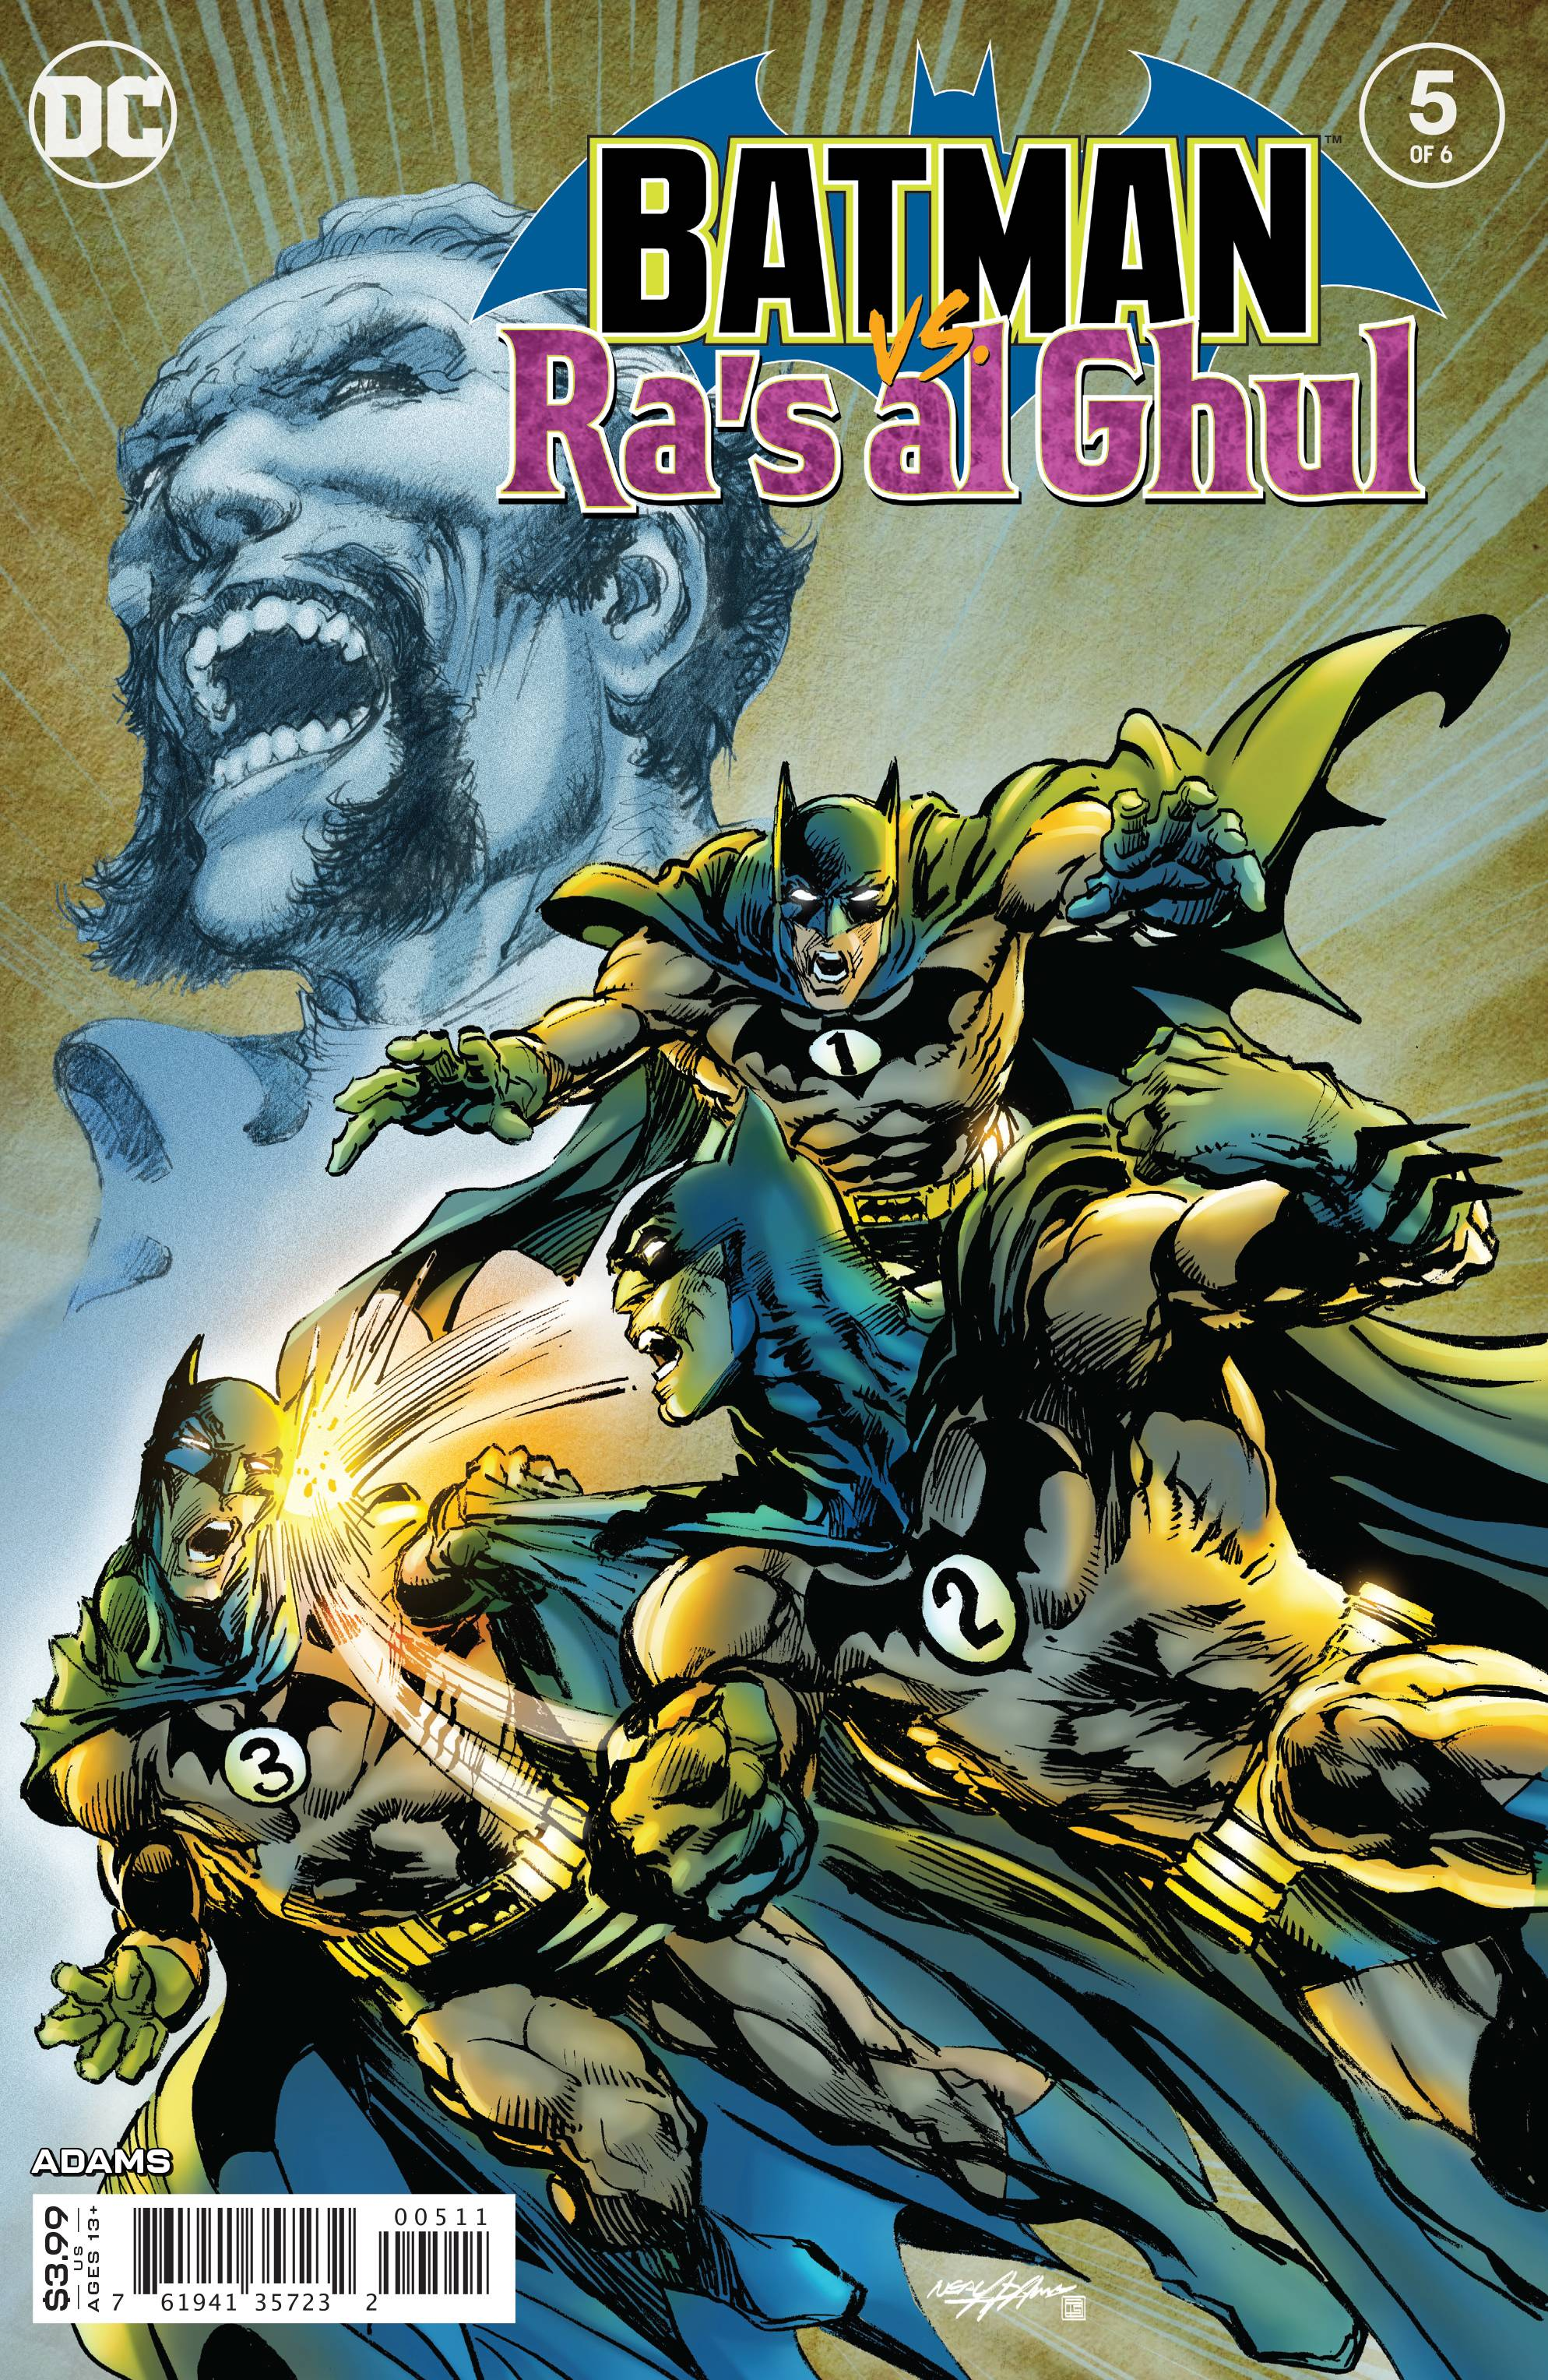 BATMAN VS RAS AL GHUL #5 (OF 6) (RES)